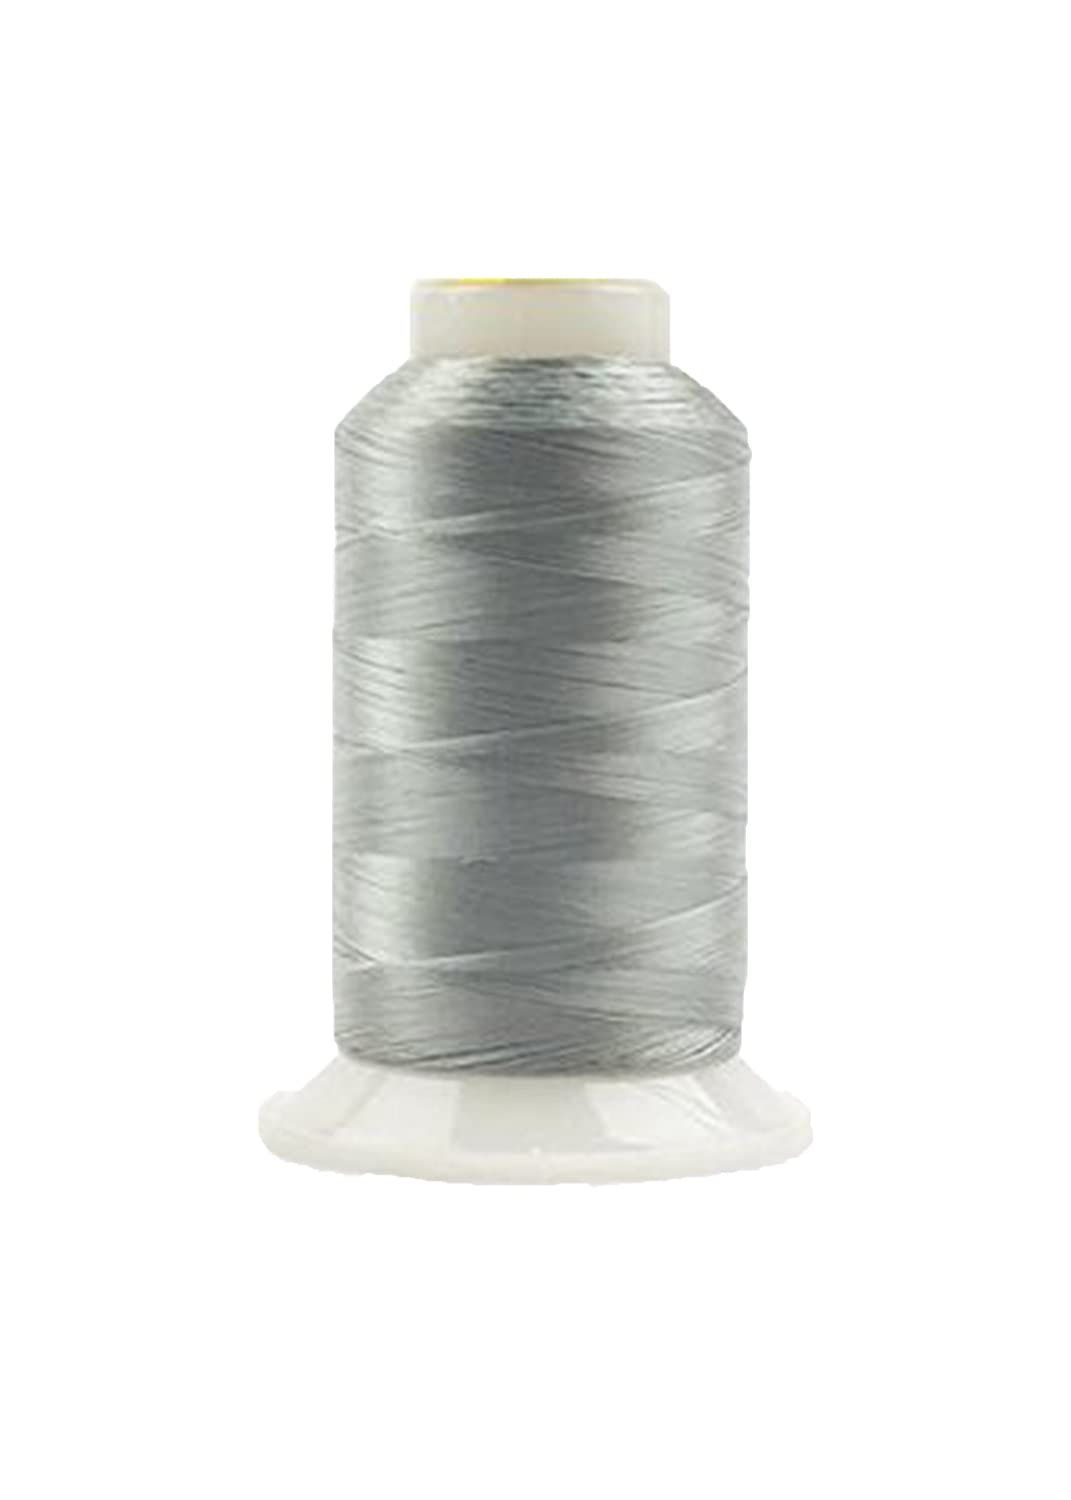 100wt 2500m Off White WonderFil Invisafil Specialty Thread 2-Ply Cottonized Soft Polyester